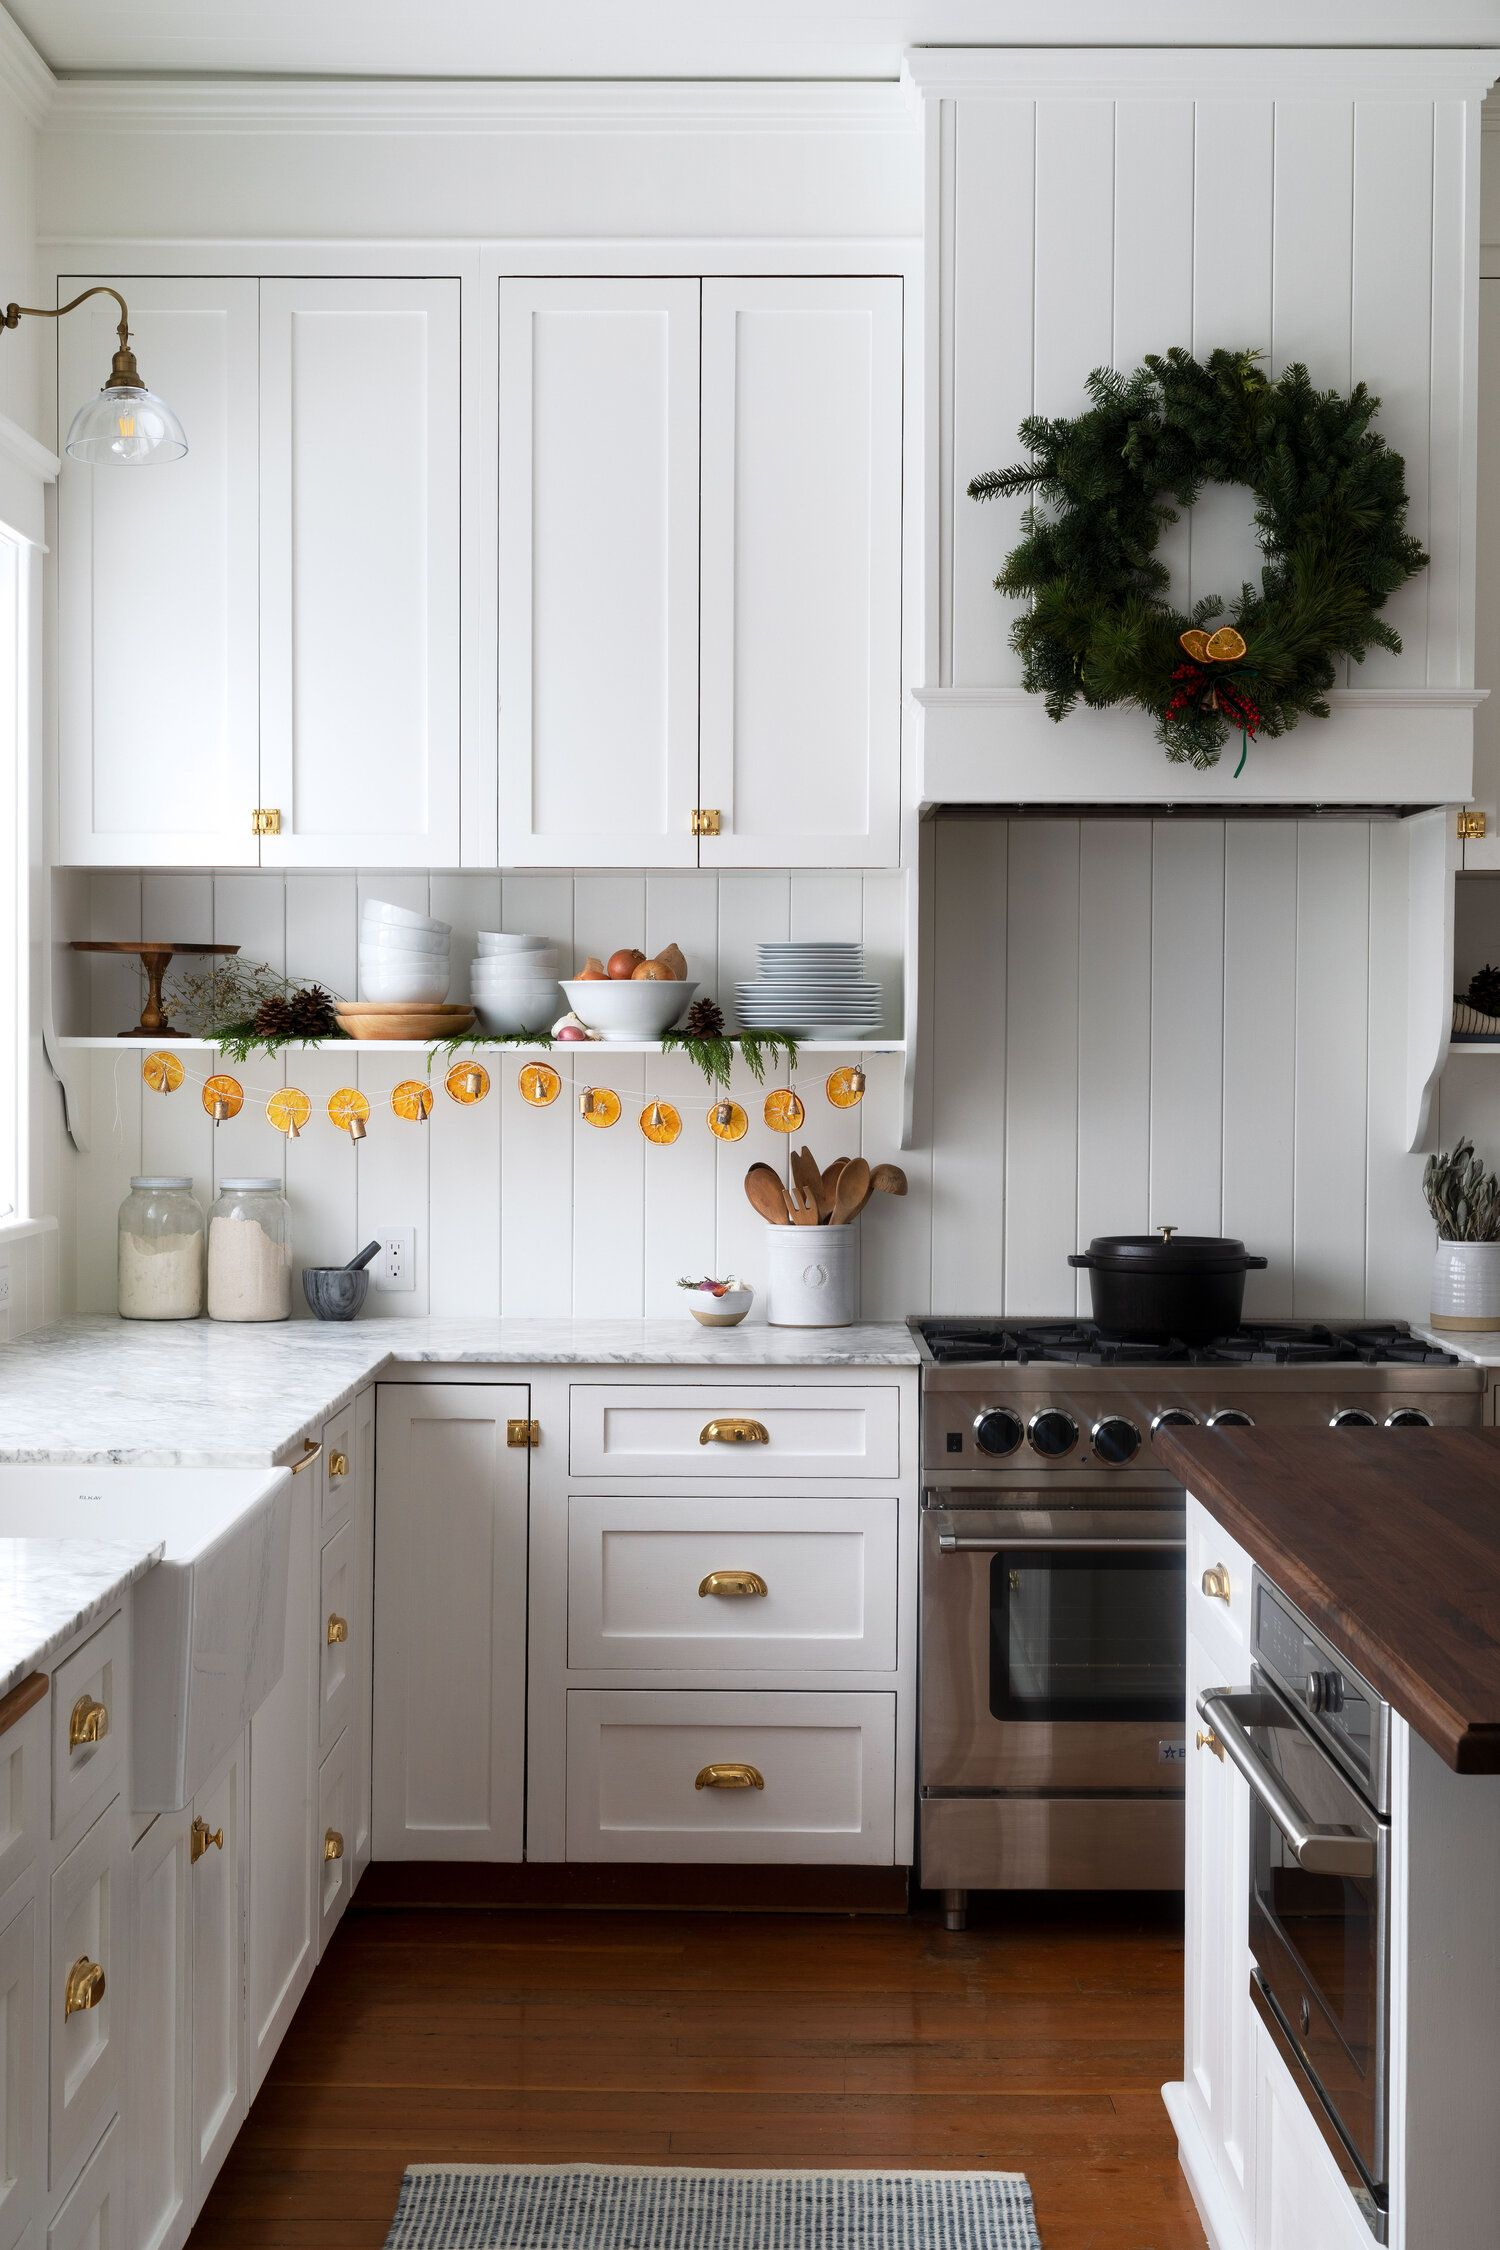 Diy How To Make A Dried Orange Garland And Brass Bell Garland The Grit And Polish Kitchen Remodel Kitchen Design Home Kitchens